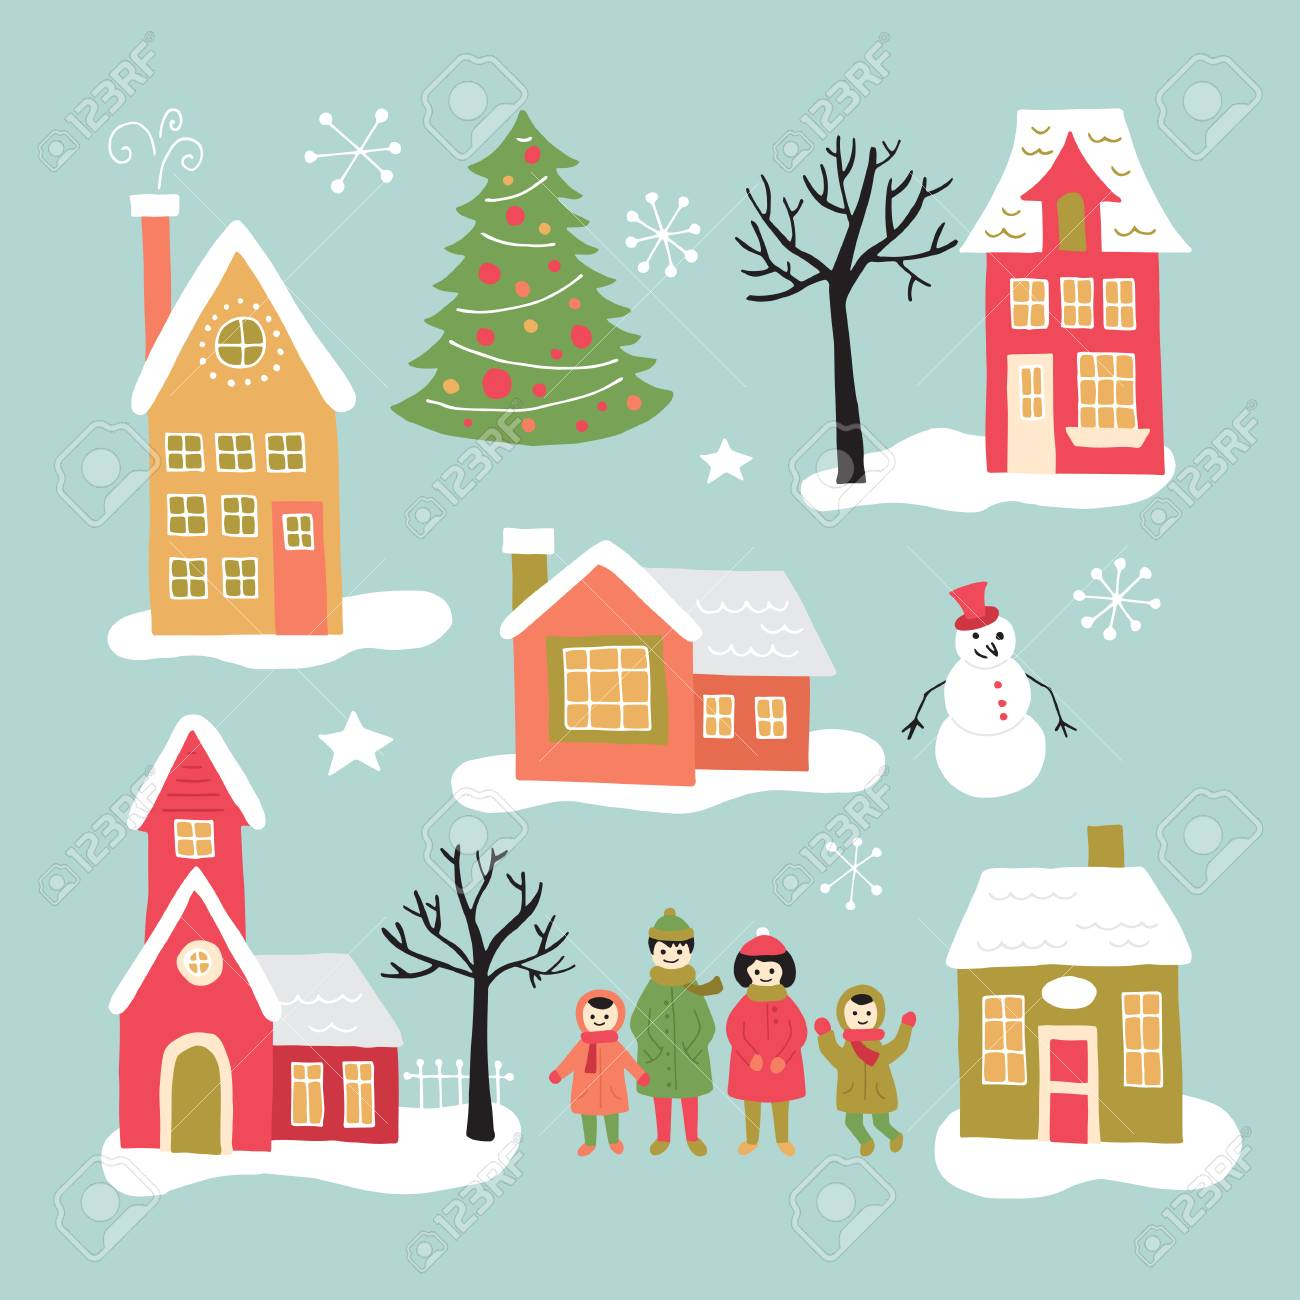 Christmas Houses Village.Christmas Holiday Hand Drawing Elements Set For Graphic And Web